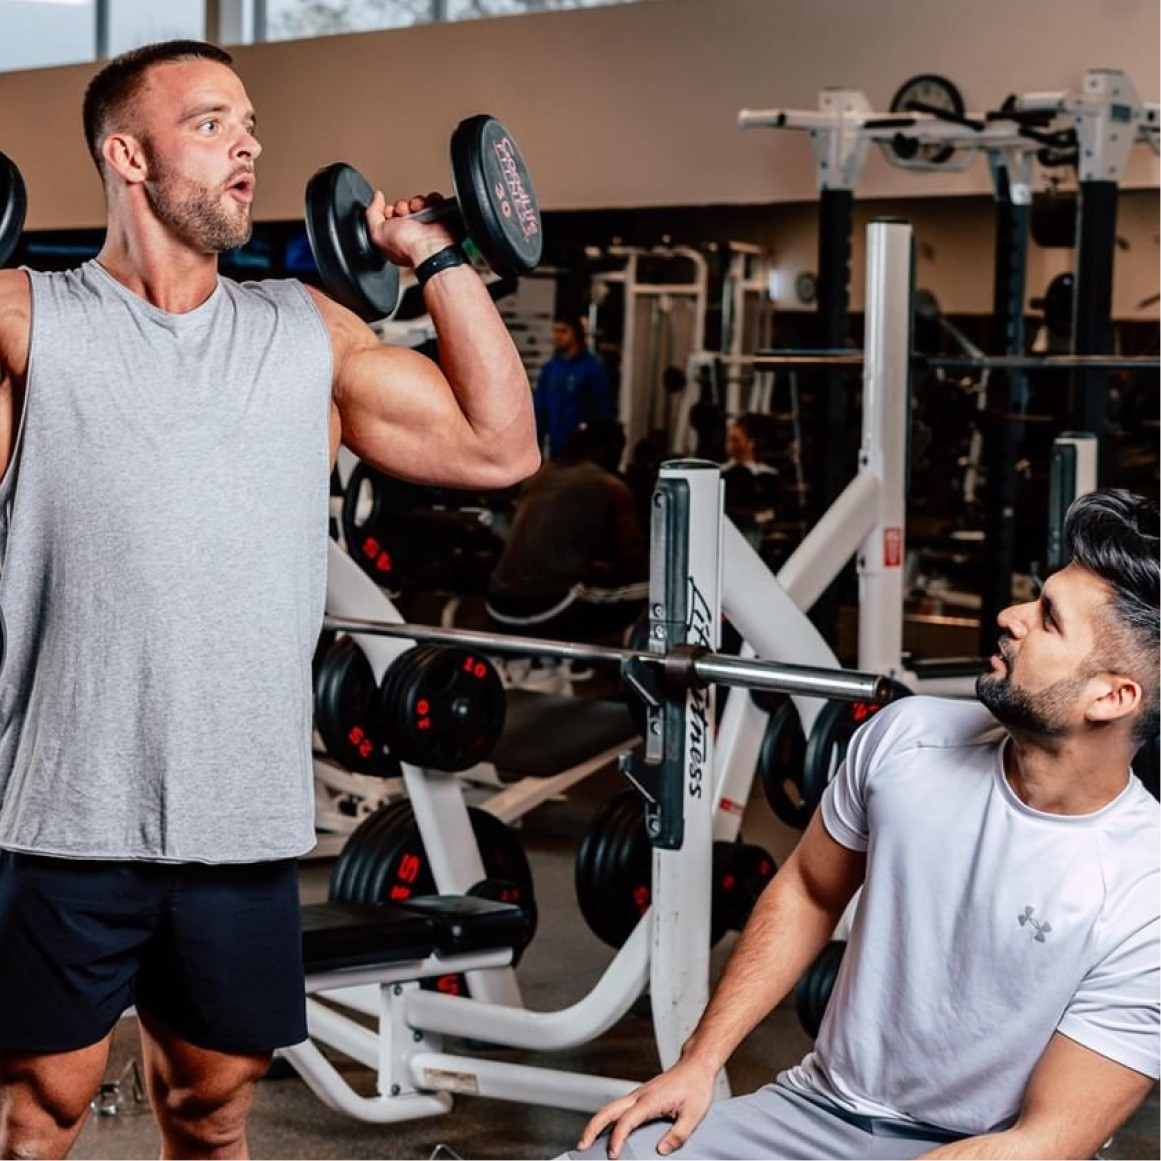 Man in grey shirt does standing shoulder presses with dumbbells while a second man on a bench in a white t-shirt observes his form